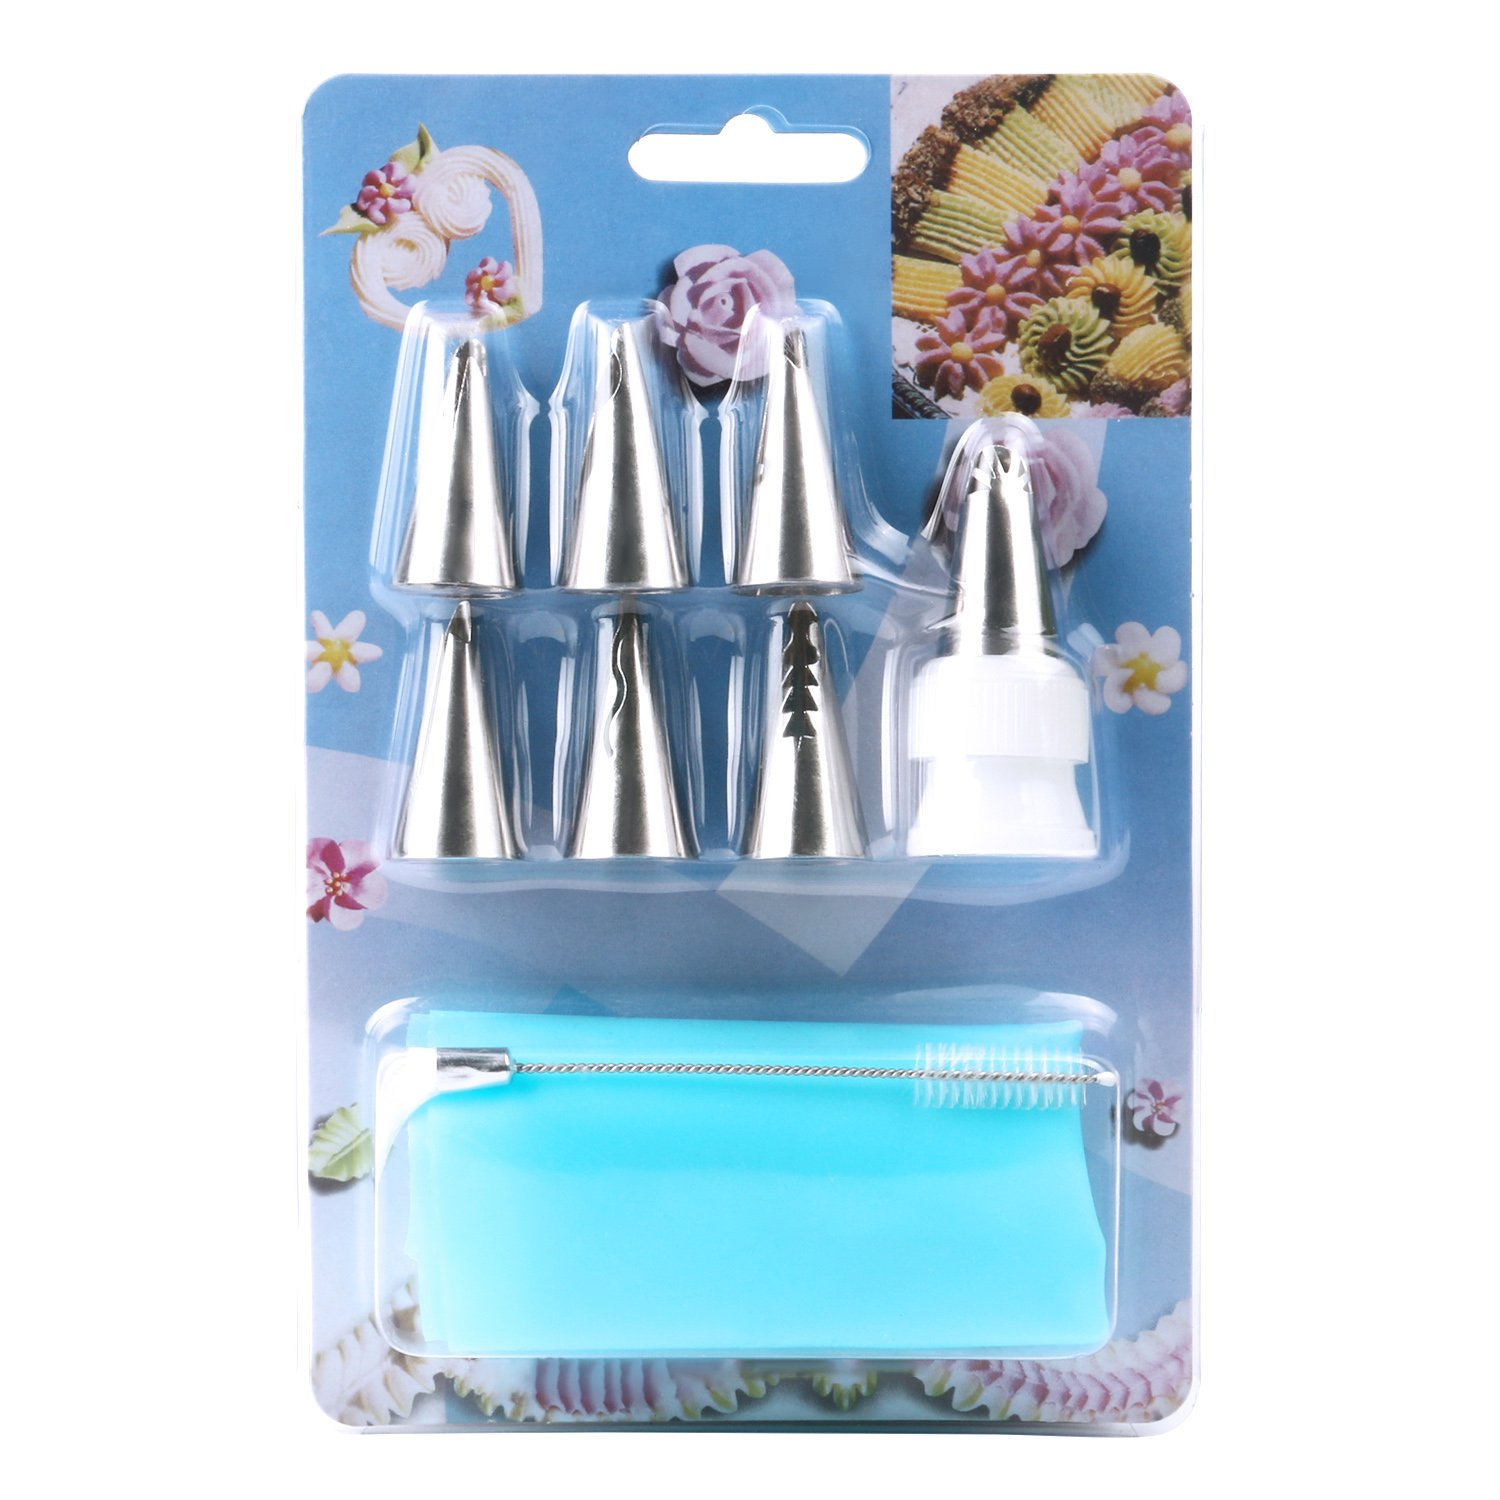 Amazon Piping Tips MCIRCO 7 piece Cake Decorating Tips Icing